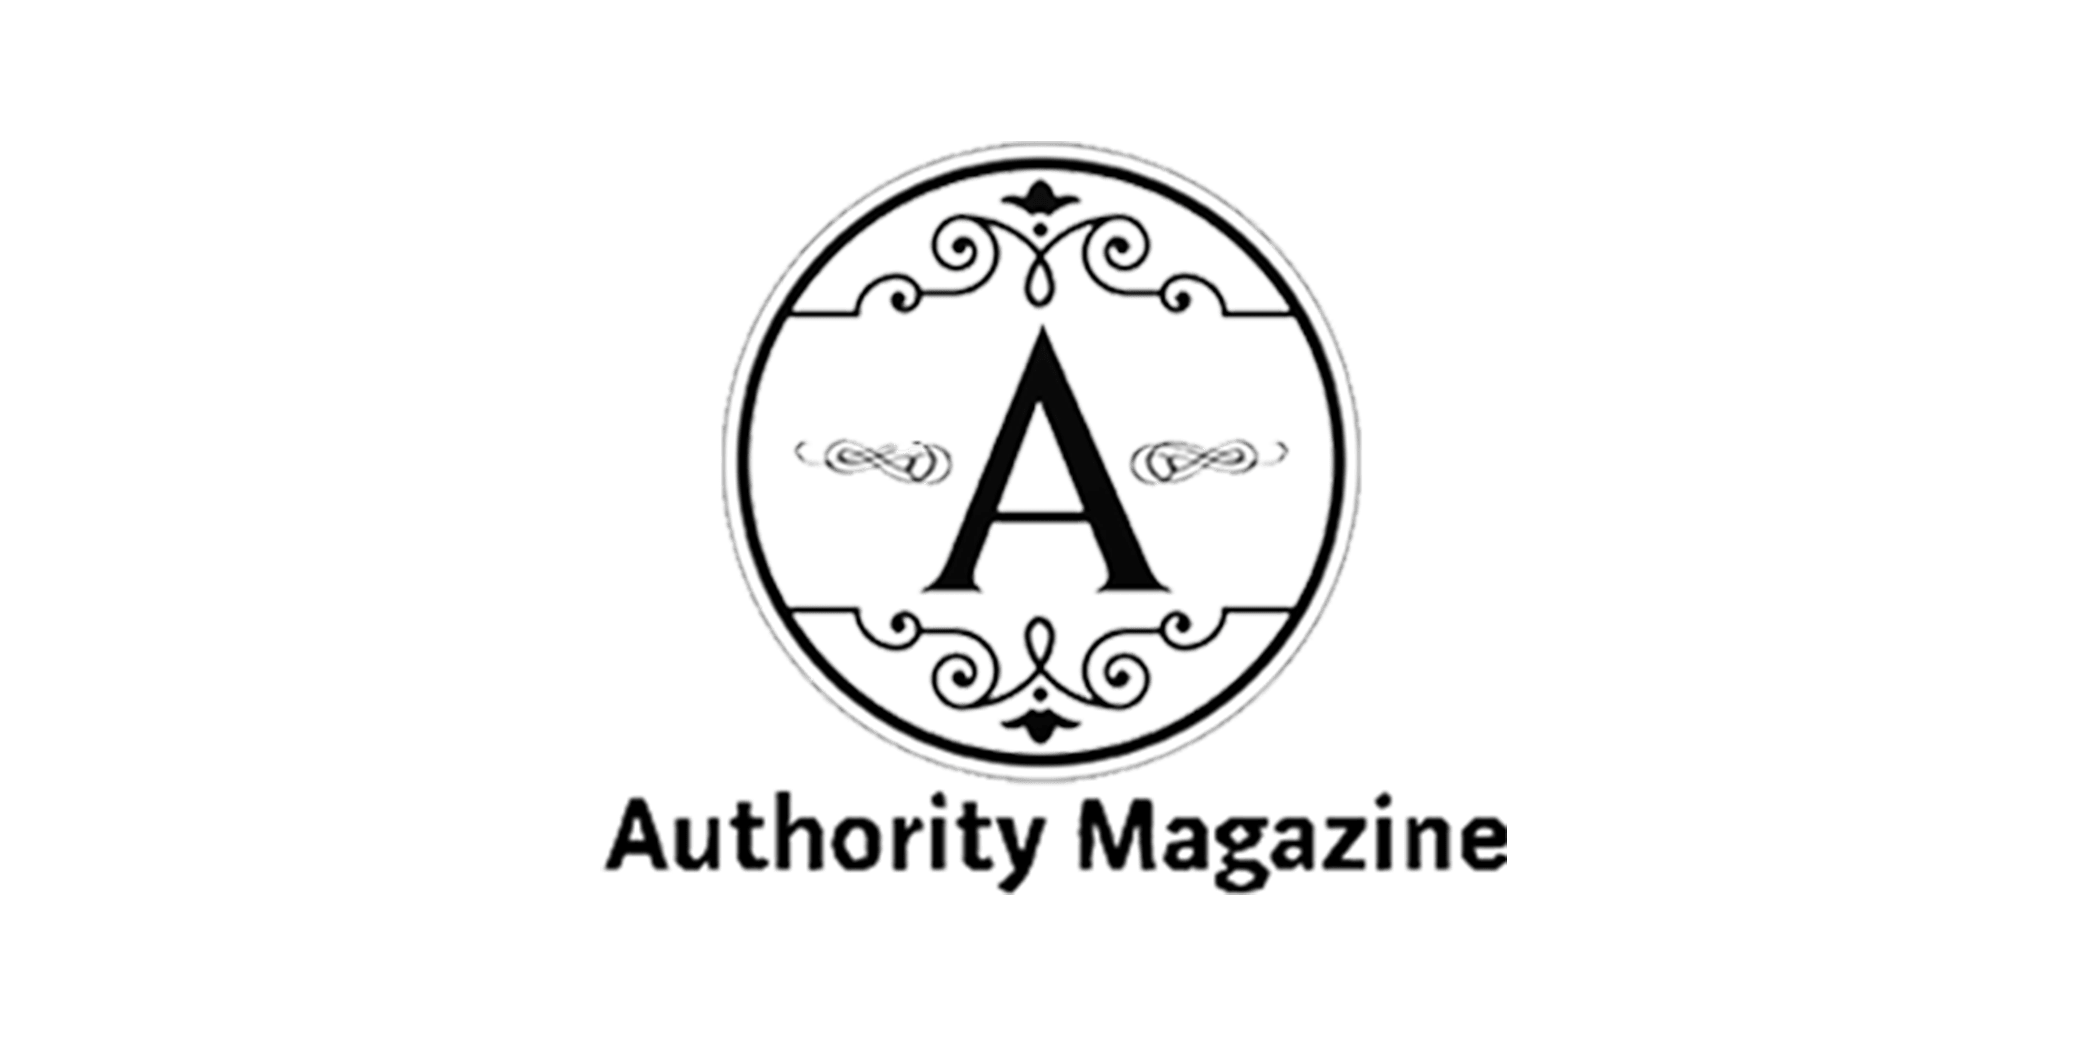 Robert Brill is interviewed by Authority Magazine